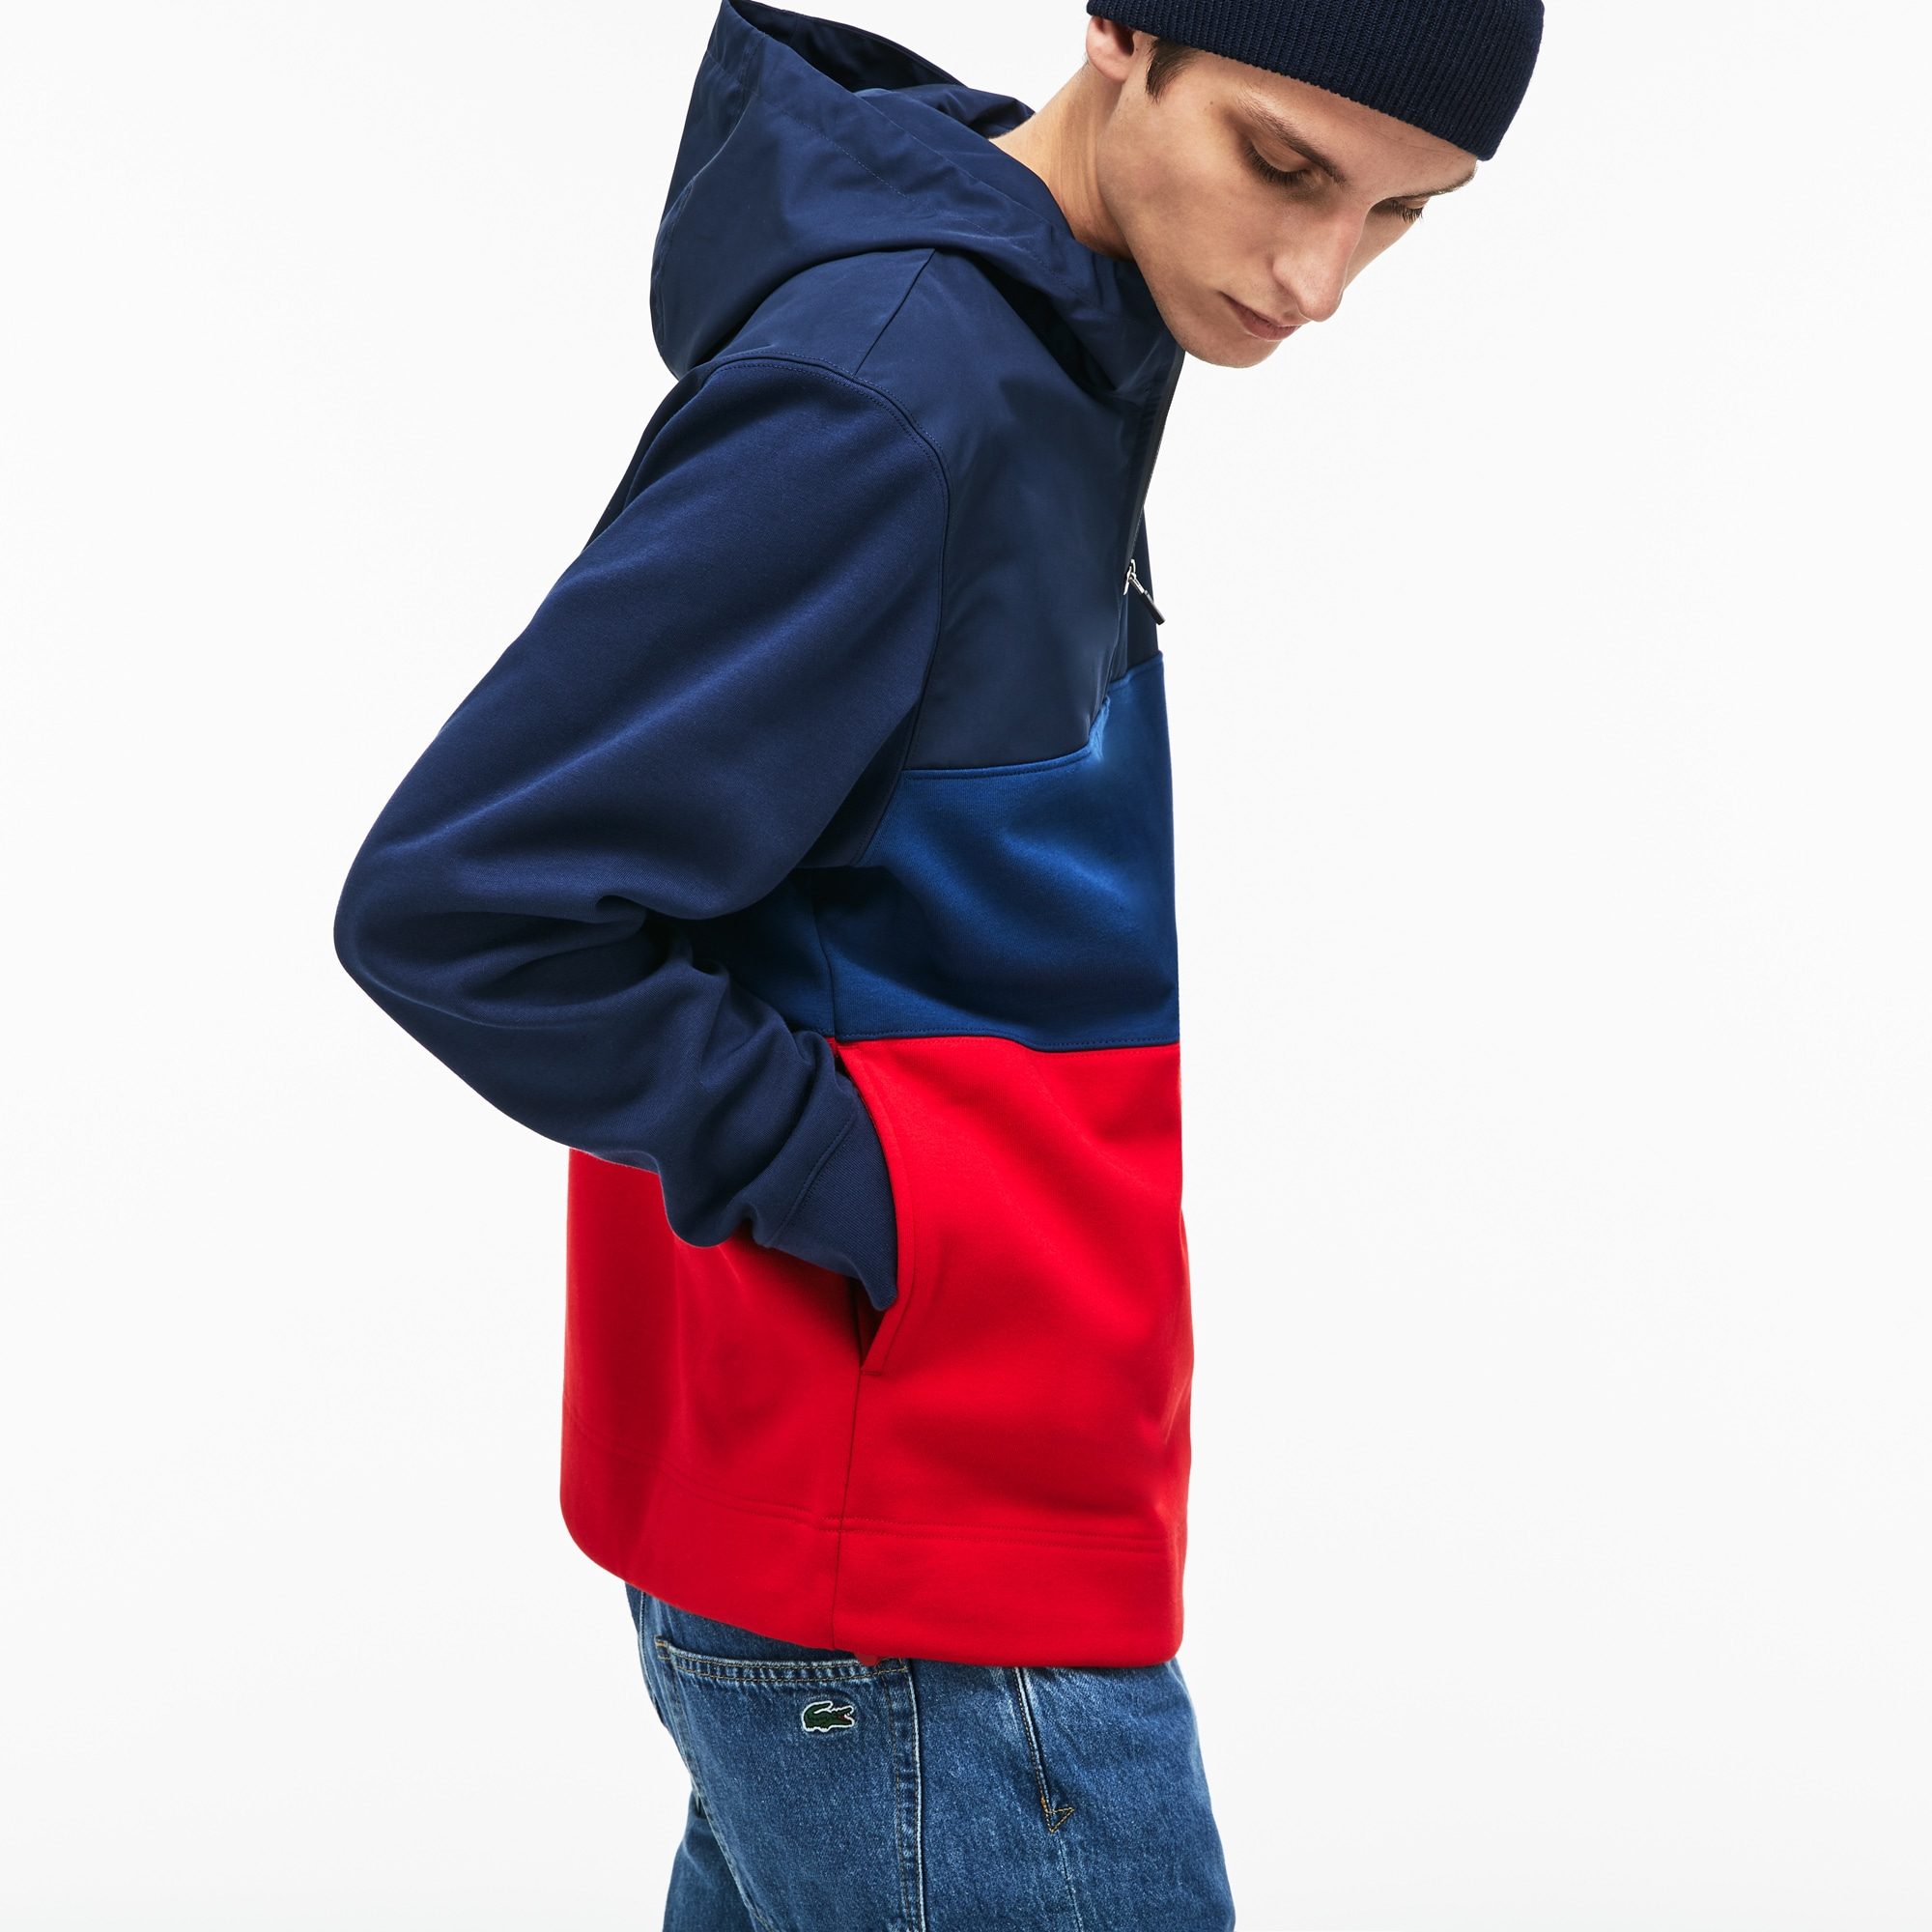 Men's Hooded Colorblock Fleece Jersey Sweatshirt